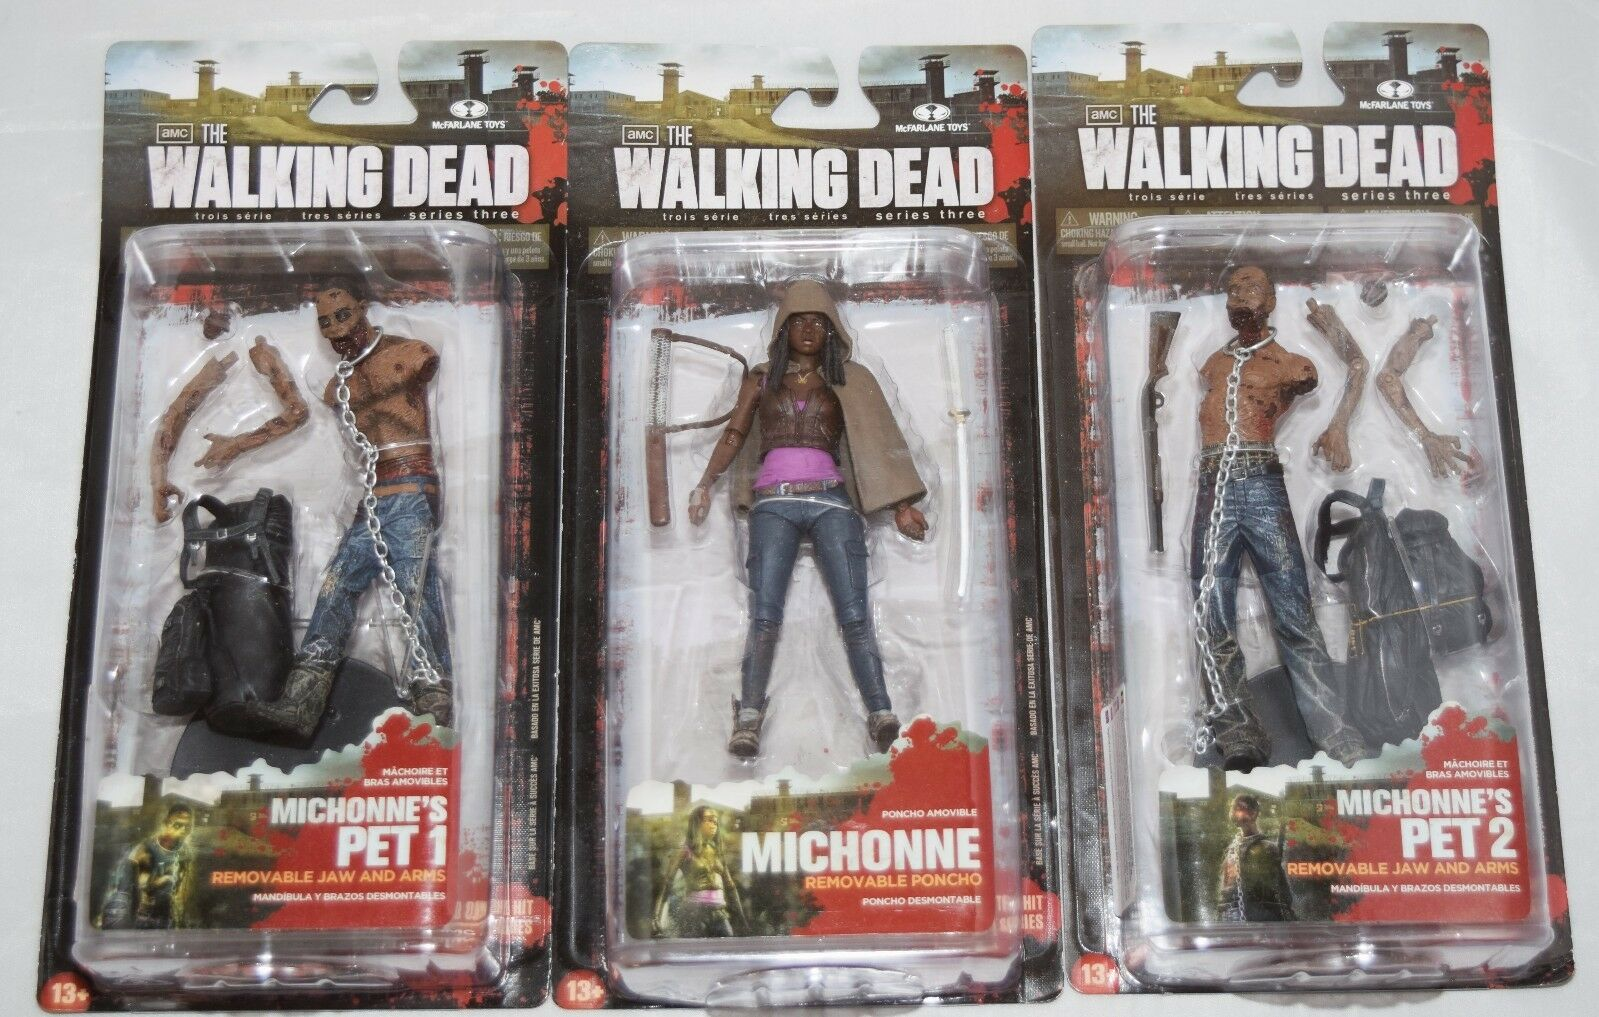 McFARLANE THE WALKING DEAD SERIES 3 MICHONNE AND PET 1 & 2 ACTION FIGURES